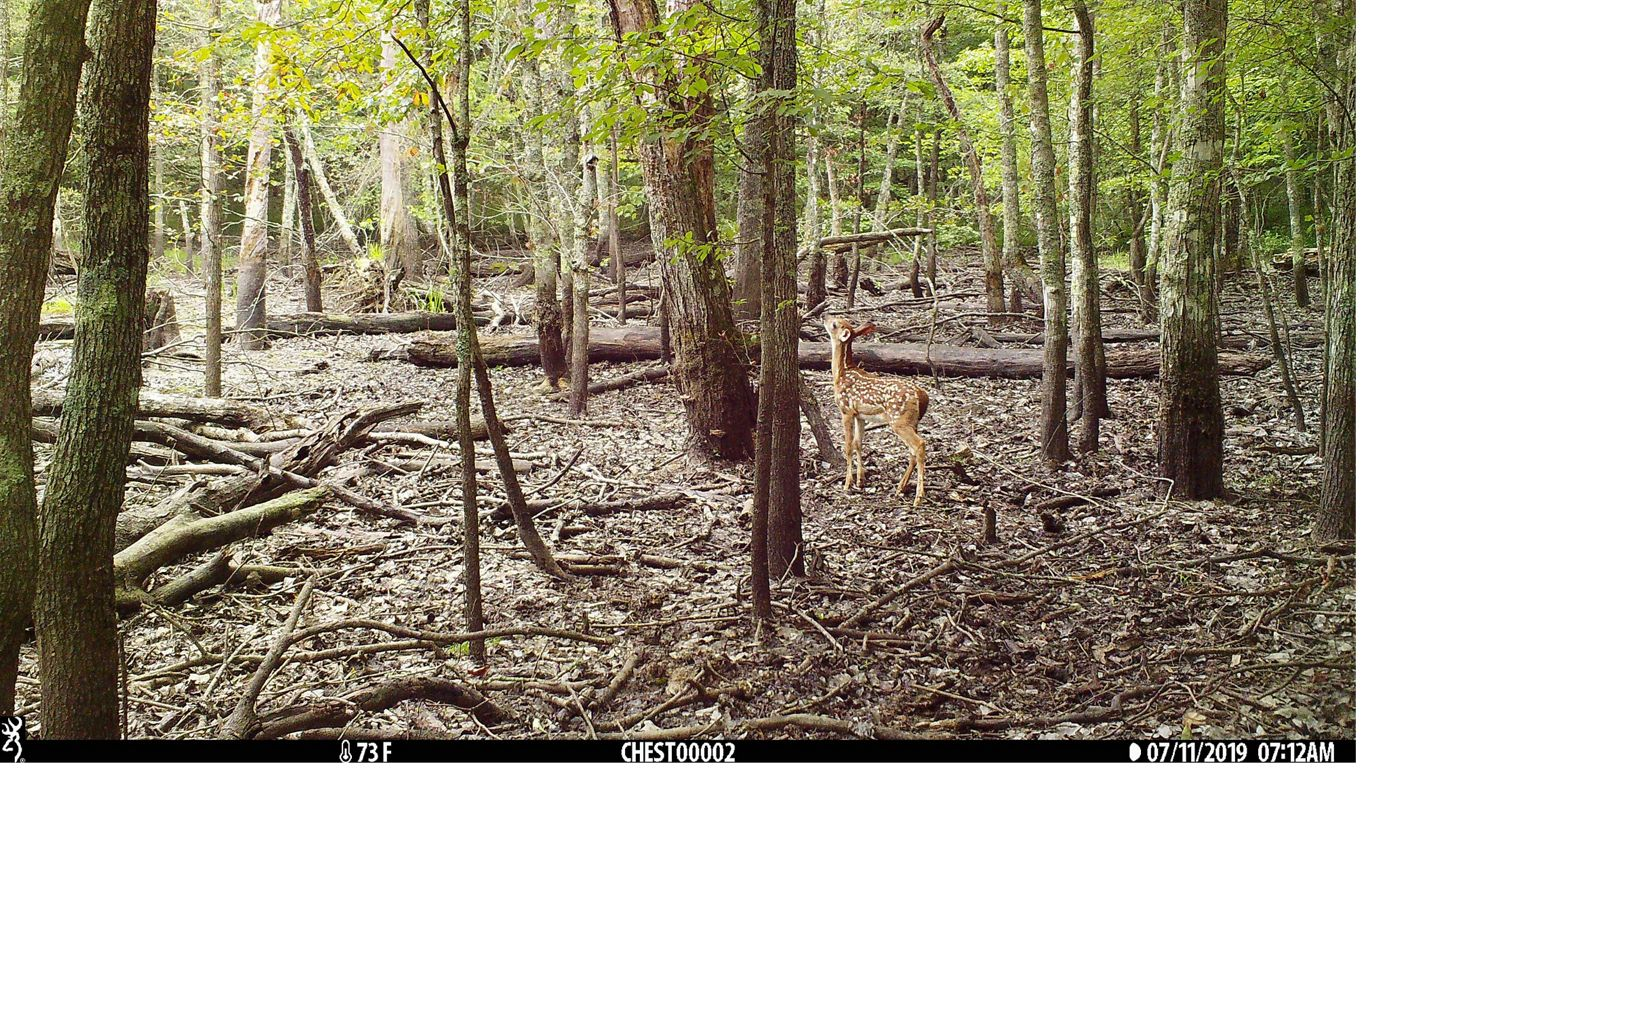 A fawn explores a wooded area.